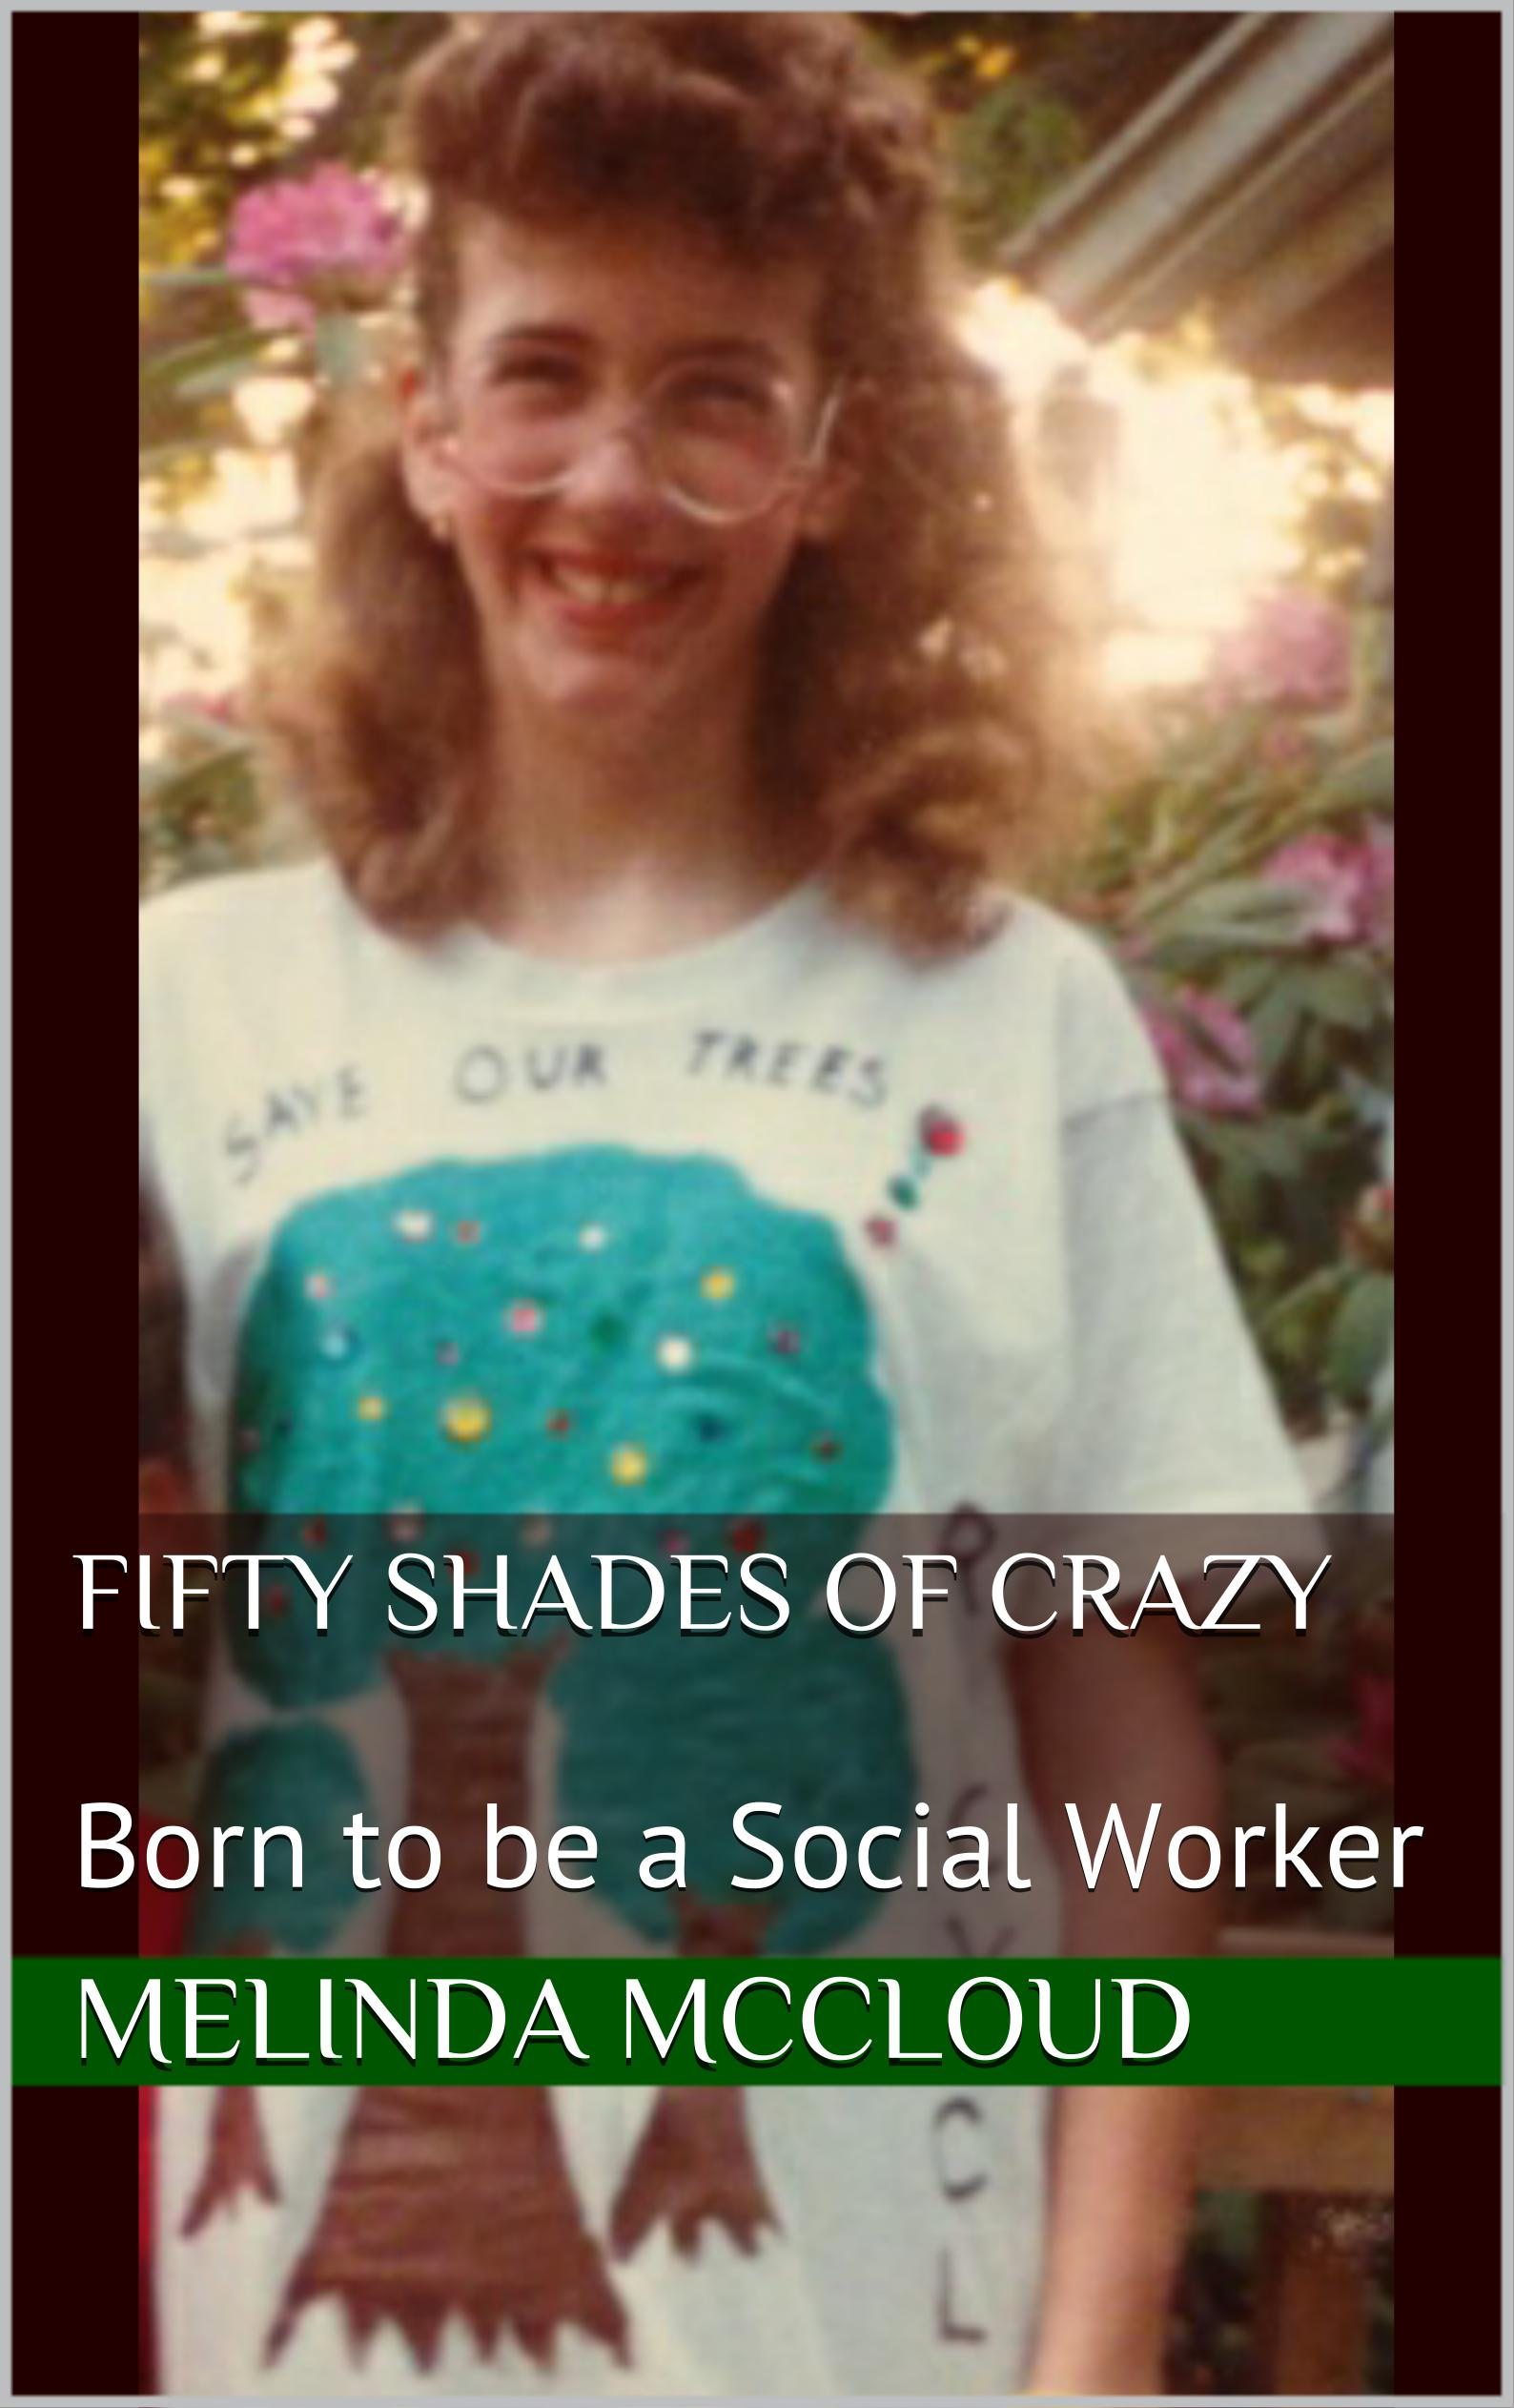 Fifty-shades-of-crazy-:-Born-to-be-a-Social-Worker